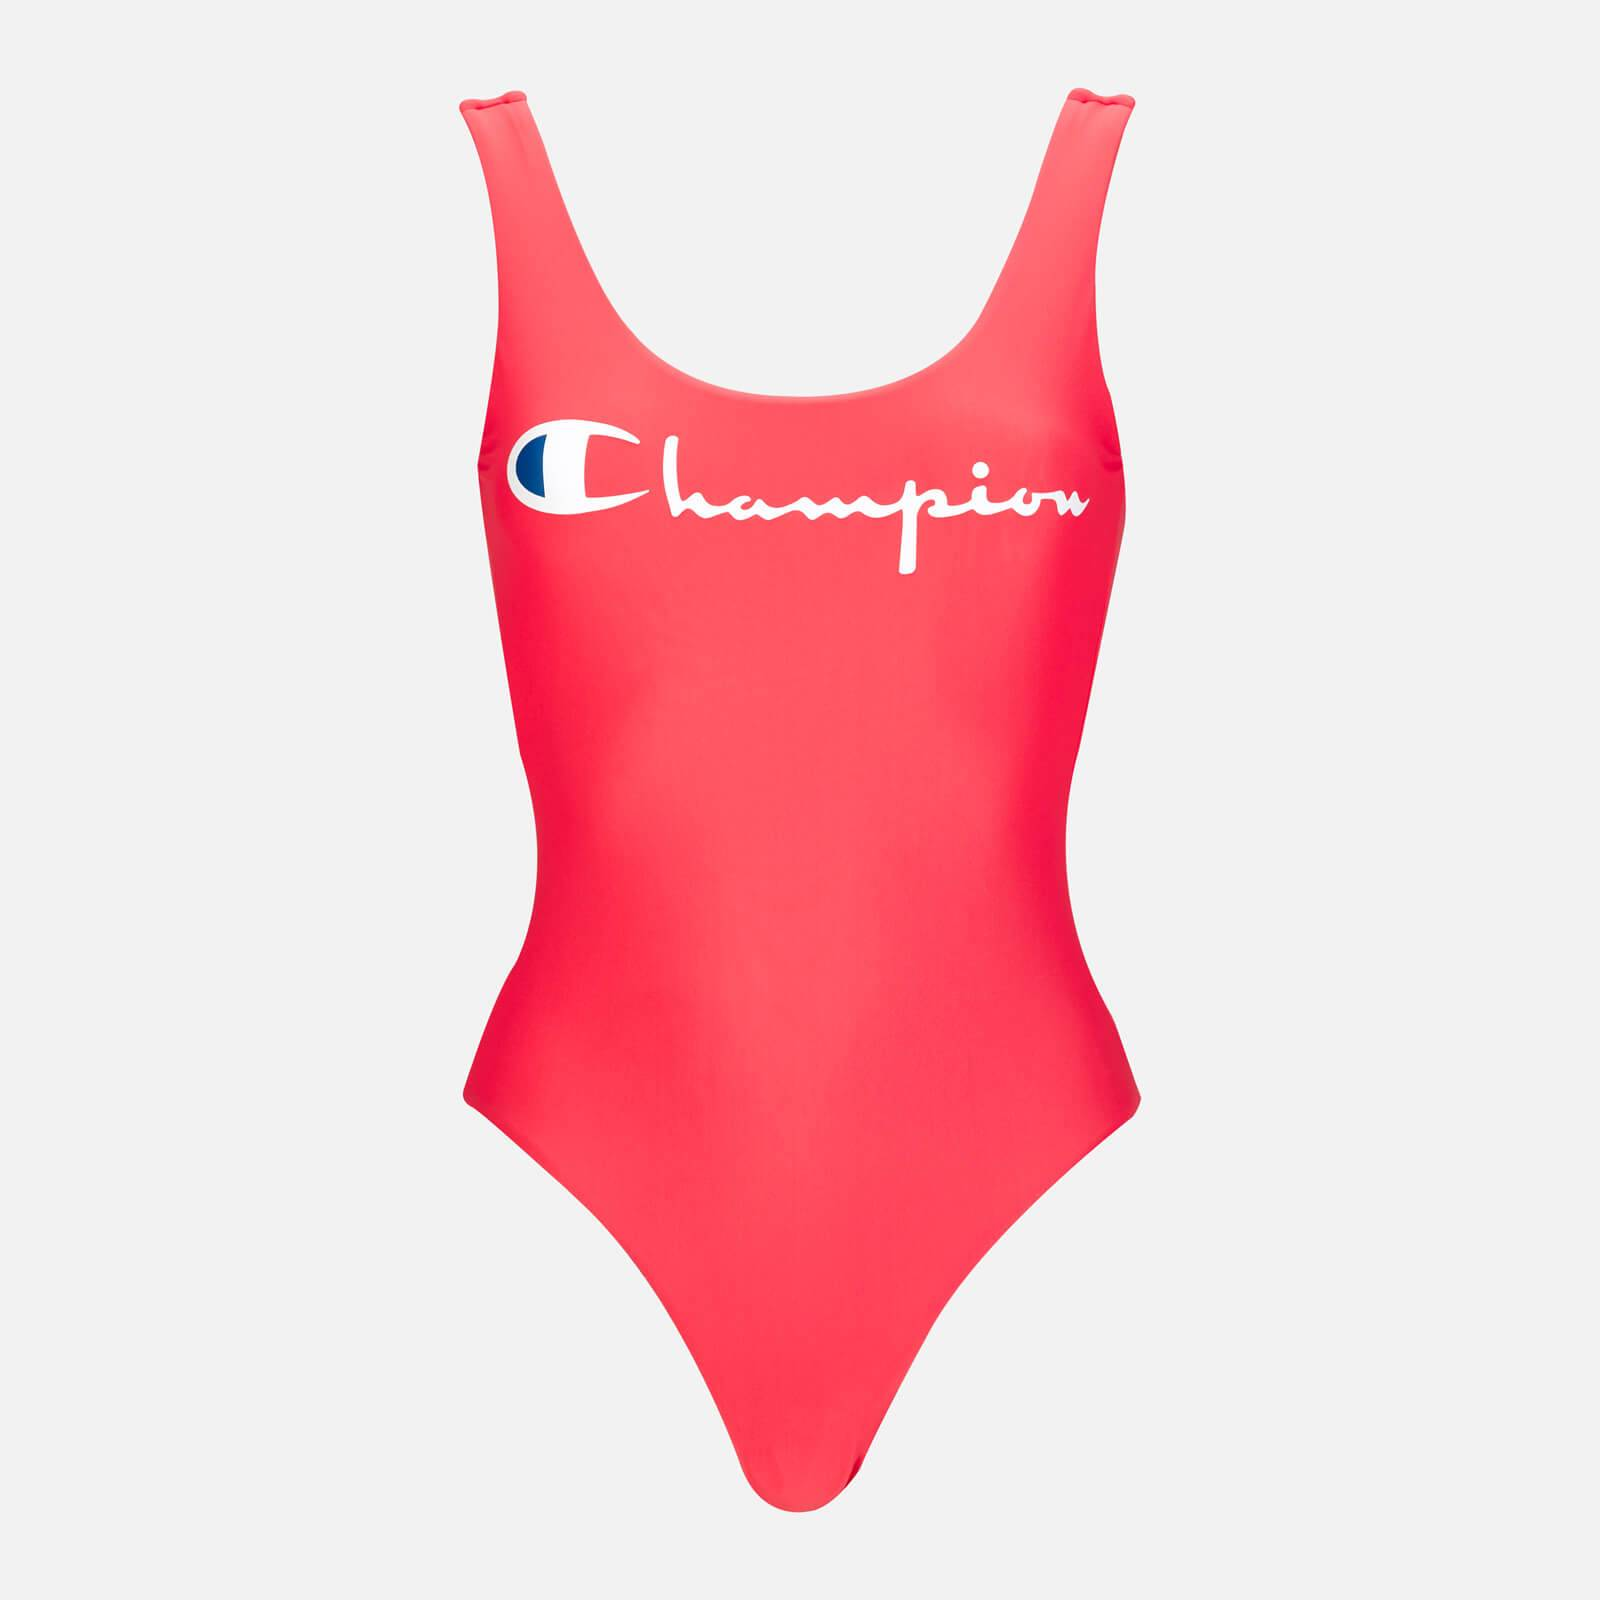 Champion Women's Reversible Swimsuit - Pink - XS - Pink